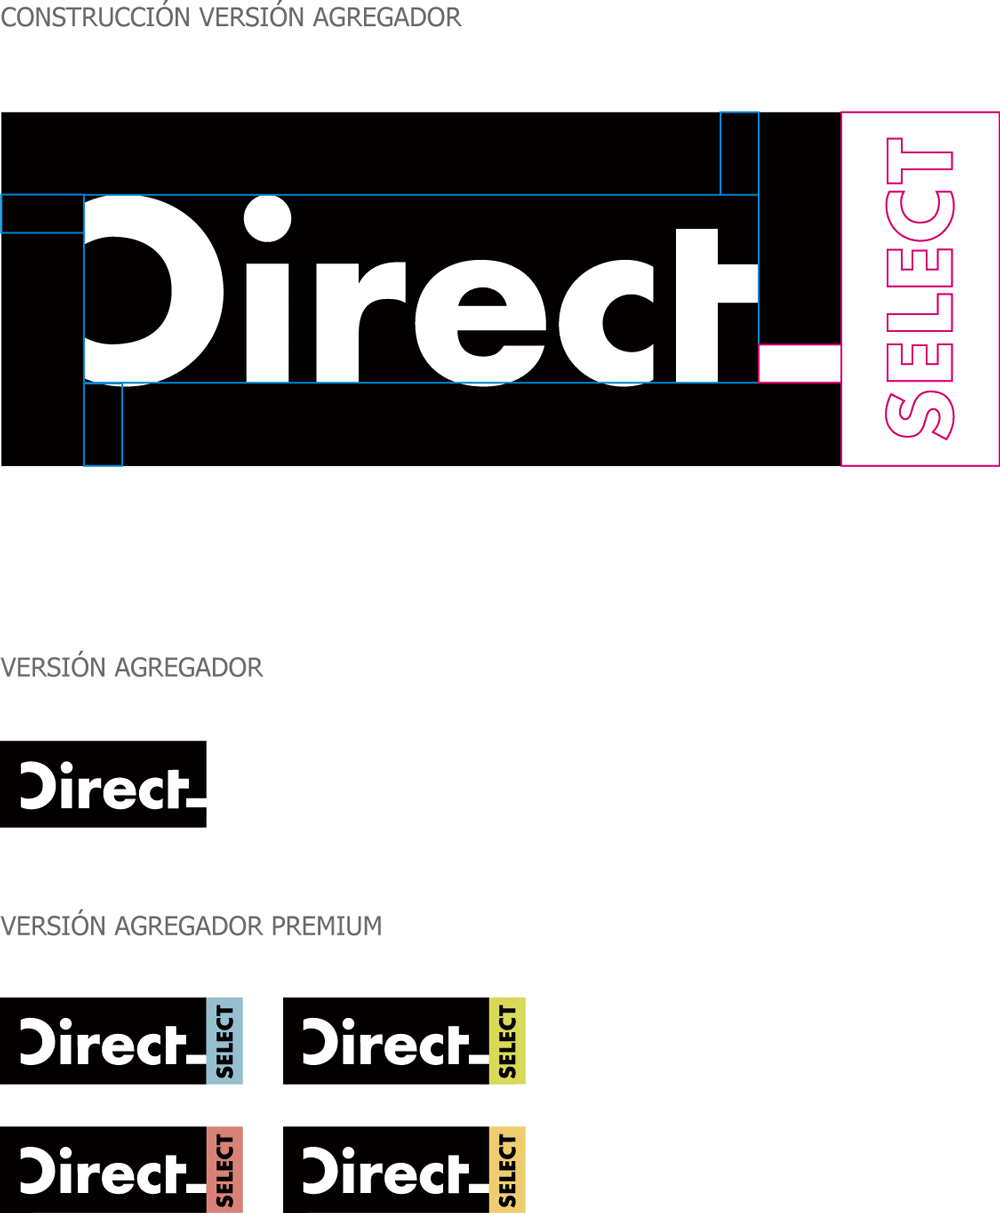 New Logo and Identity for Direct by Interbrand